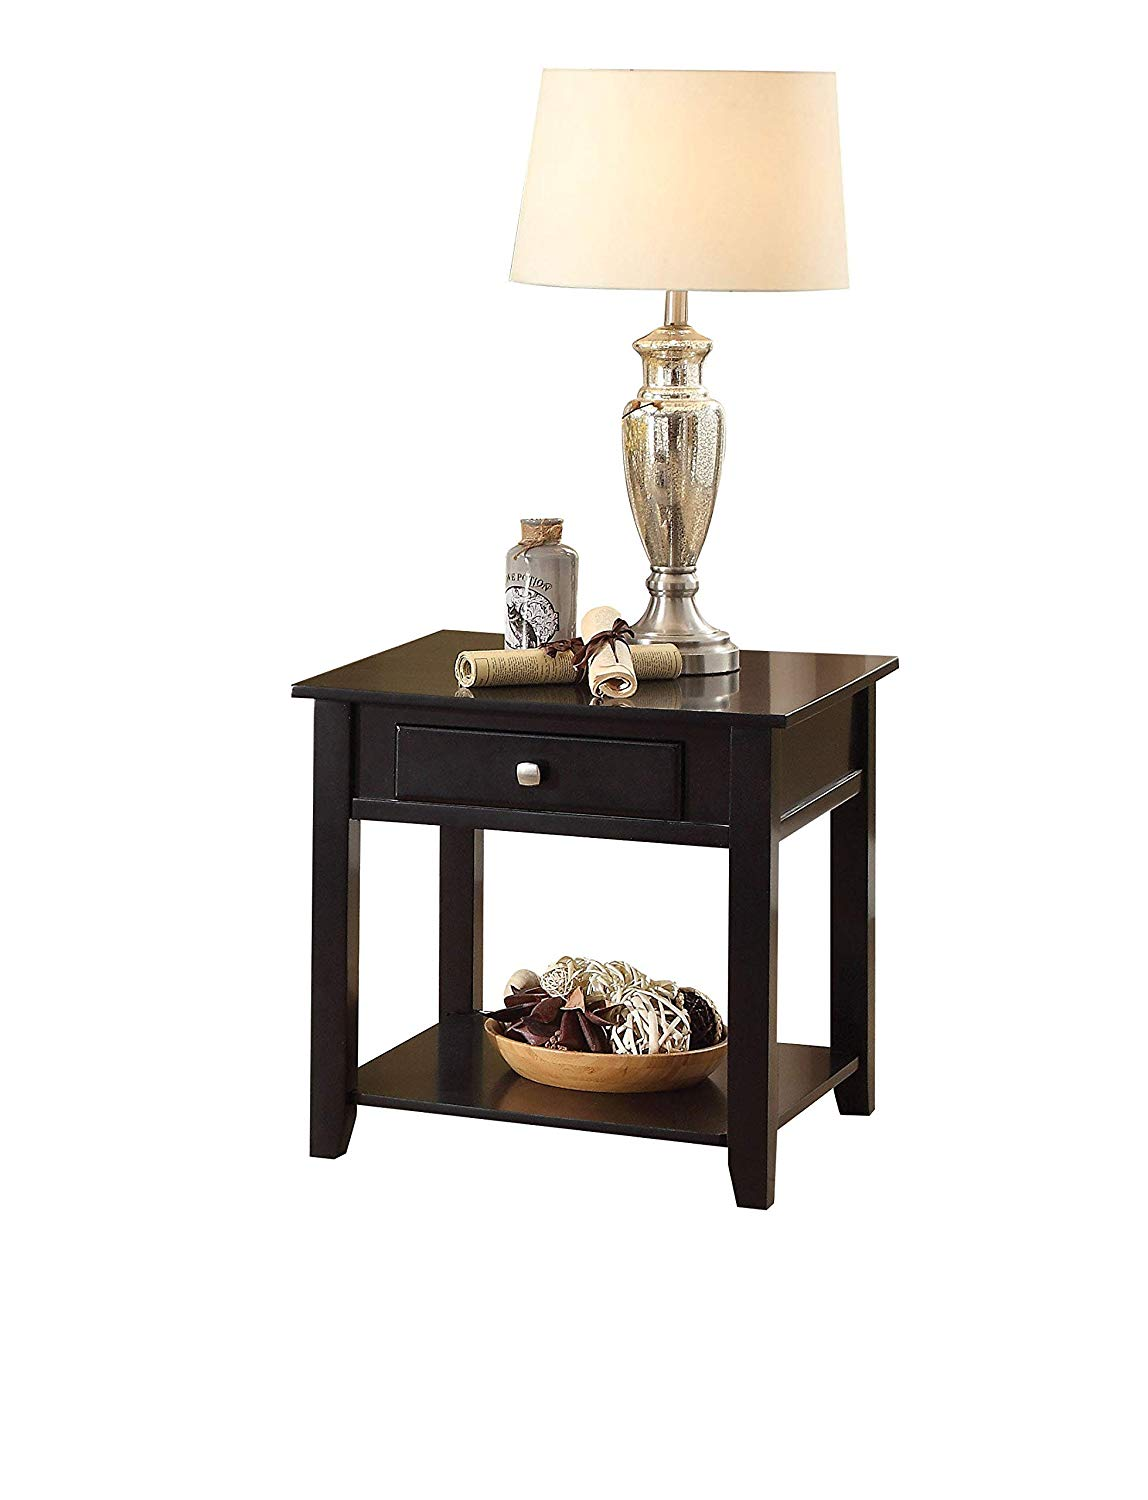 benzara wooden end table with drawer black better homes and gardens mercer accent vintage oak kitchen dining quality linens modern nest tables white gold coffee solid pine